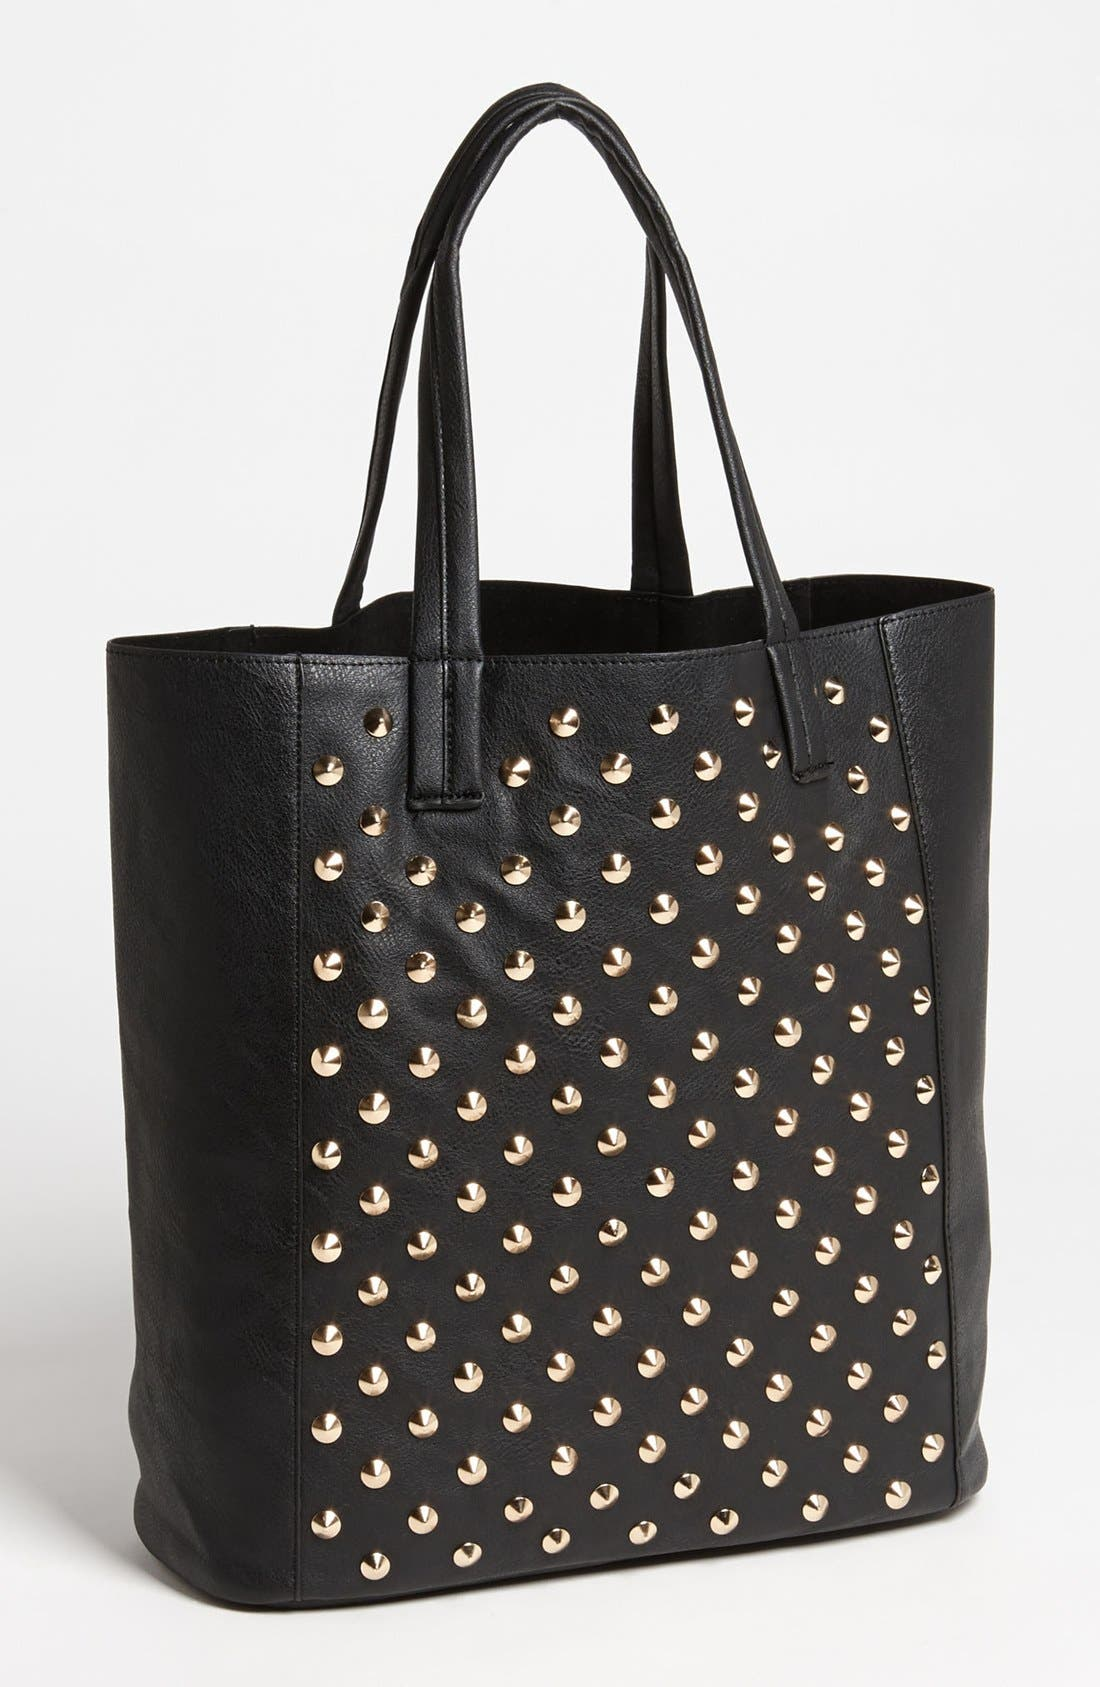 Alternate Image 1 Selected - BP. Studded Faux Leather Tote